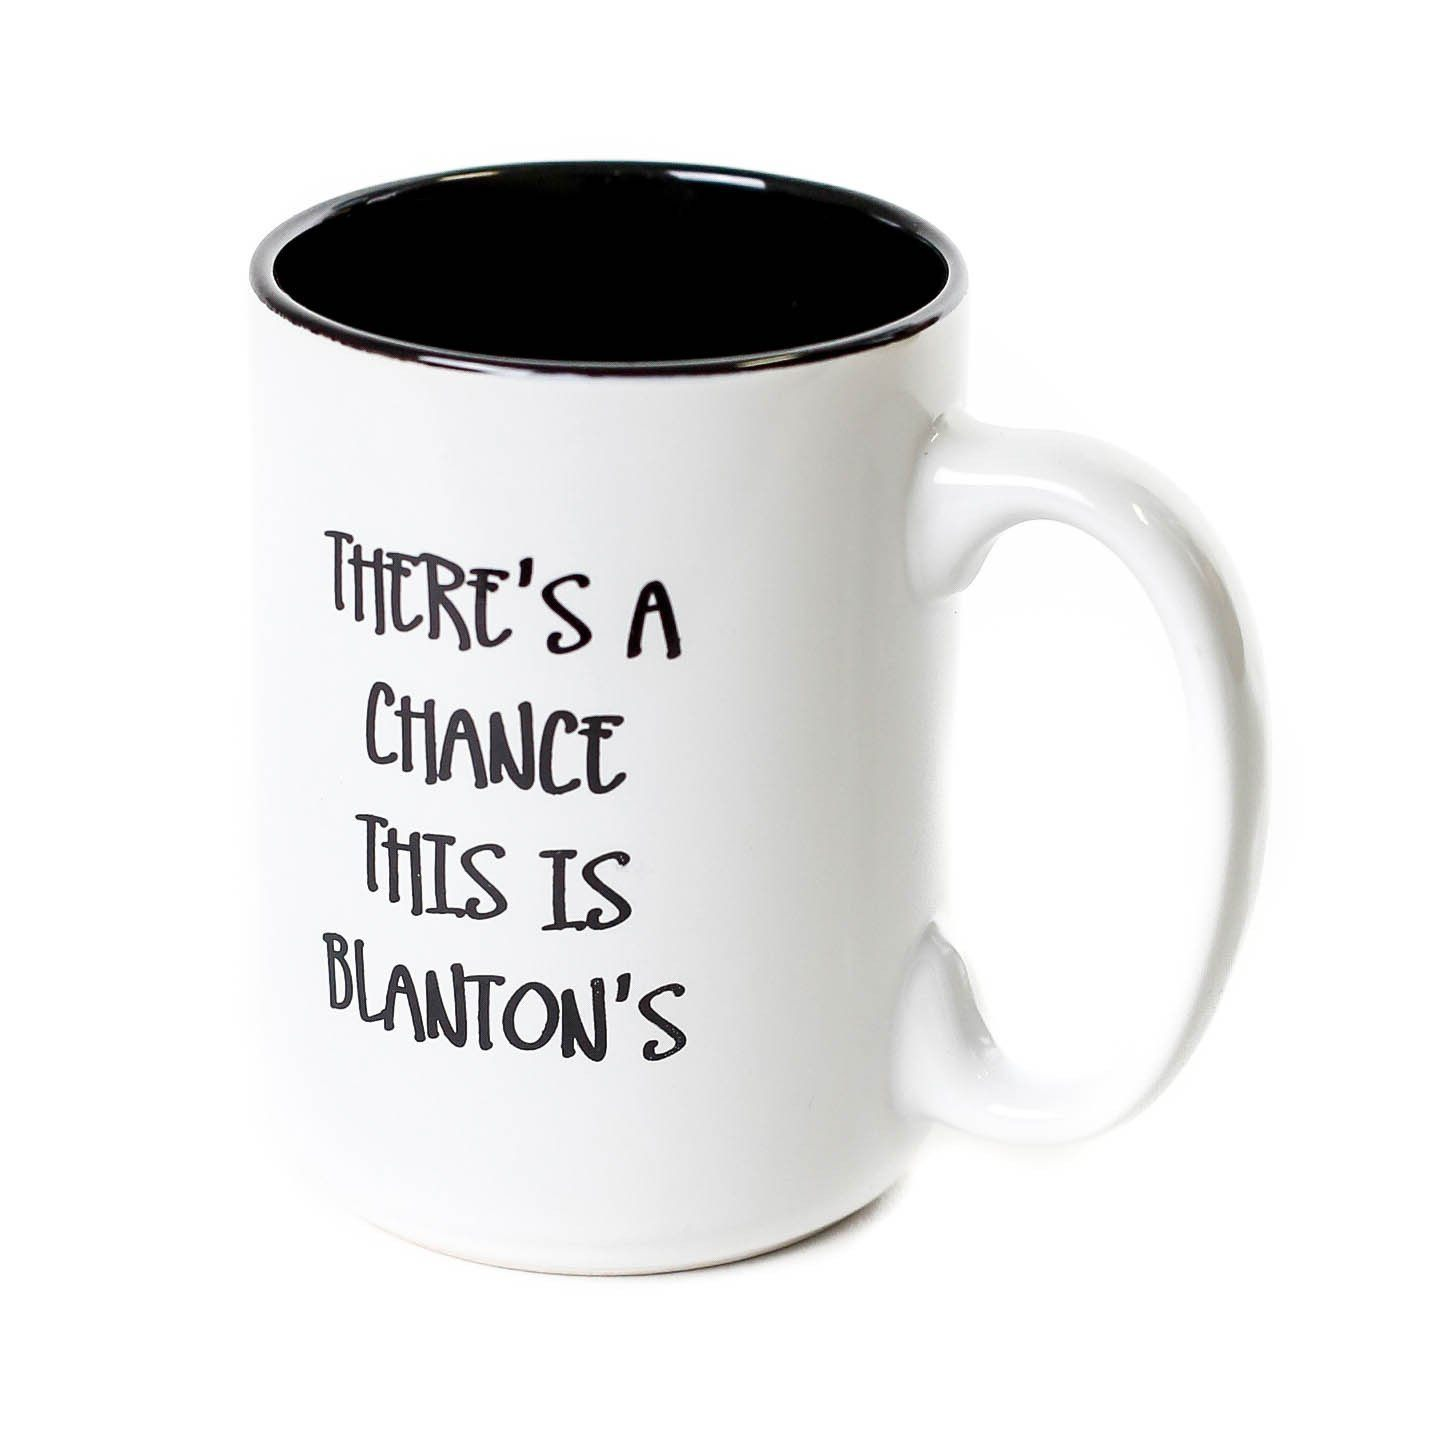 "Blanton's ""There's a Chance This is Blanton's"" Coffee Mug"